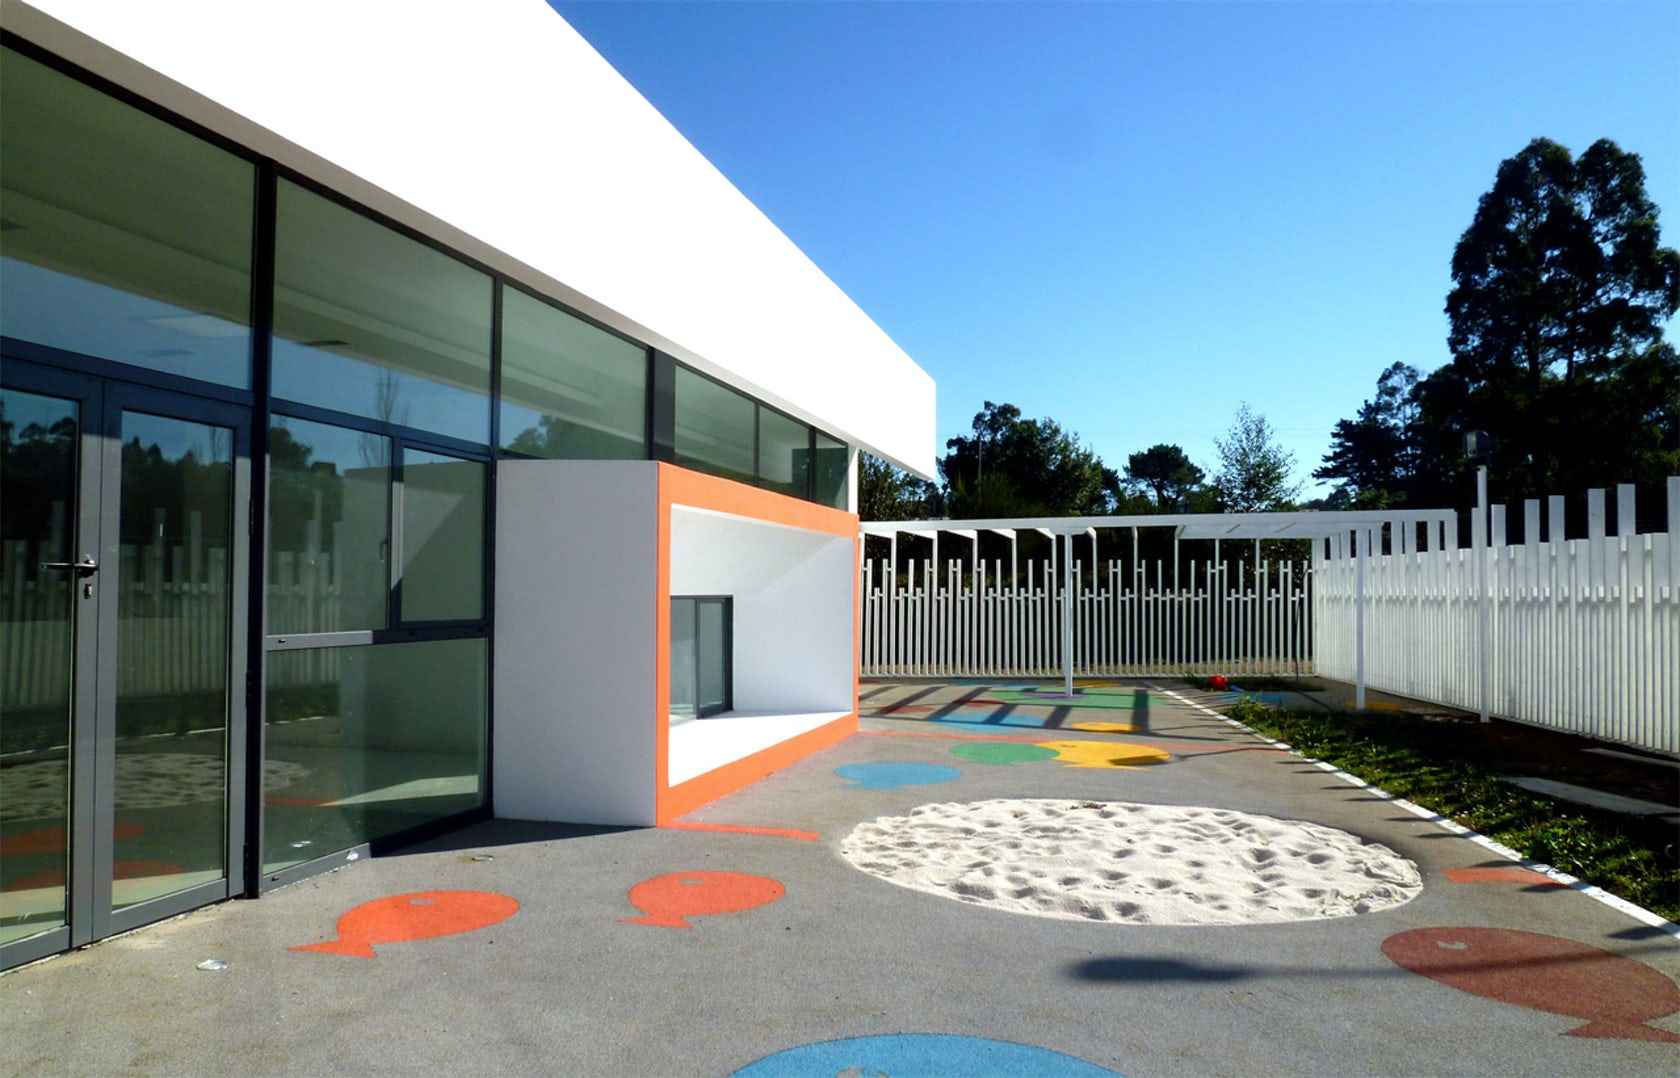 Nursery school in curtis a coru a spain architizer - Estudios arquitectura coruna ...